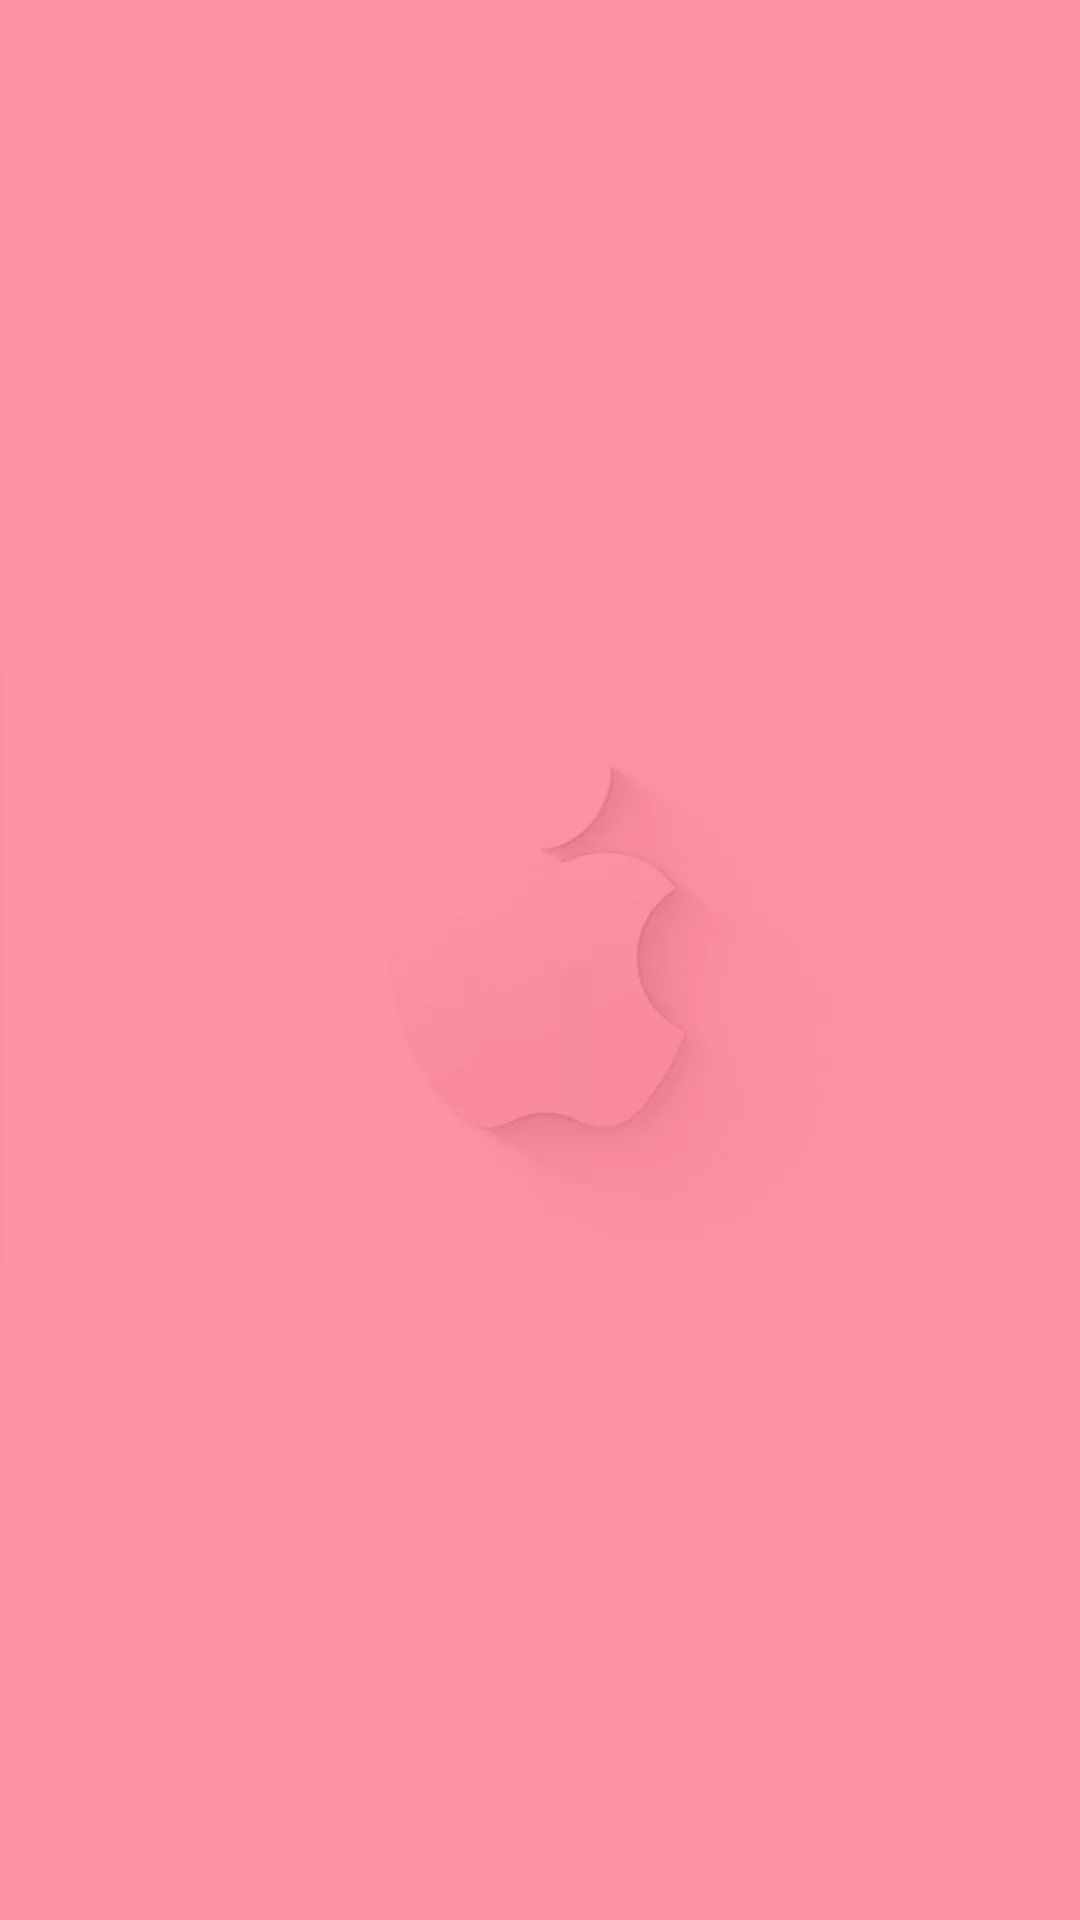 1080x1920 20 Solid Pink iPhone Wallpapers - WallpaperBoat